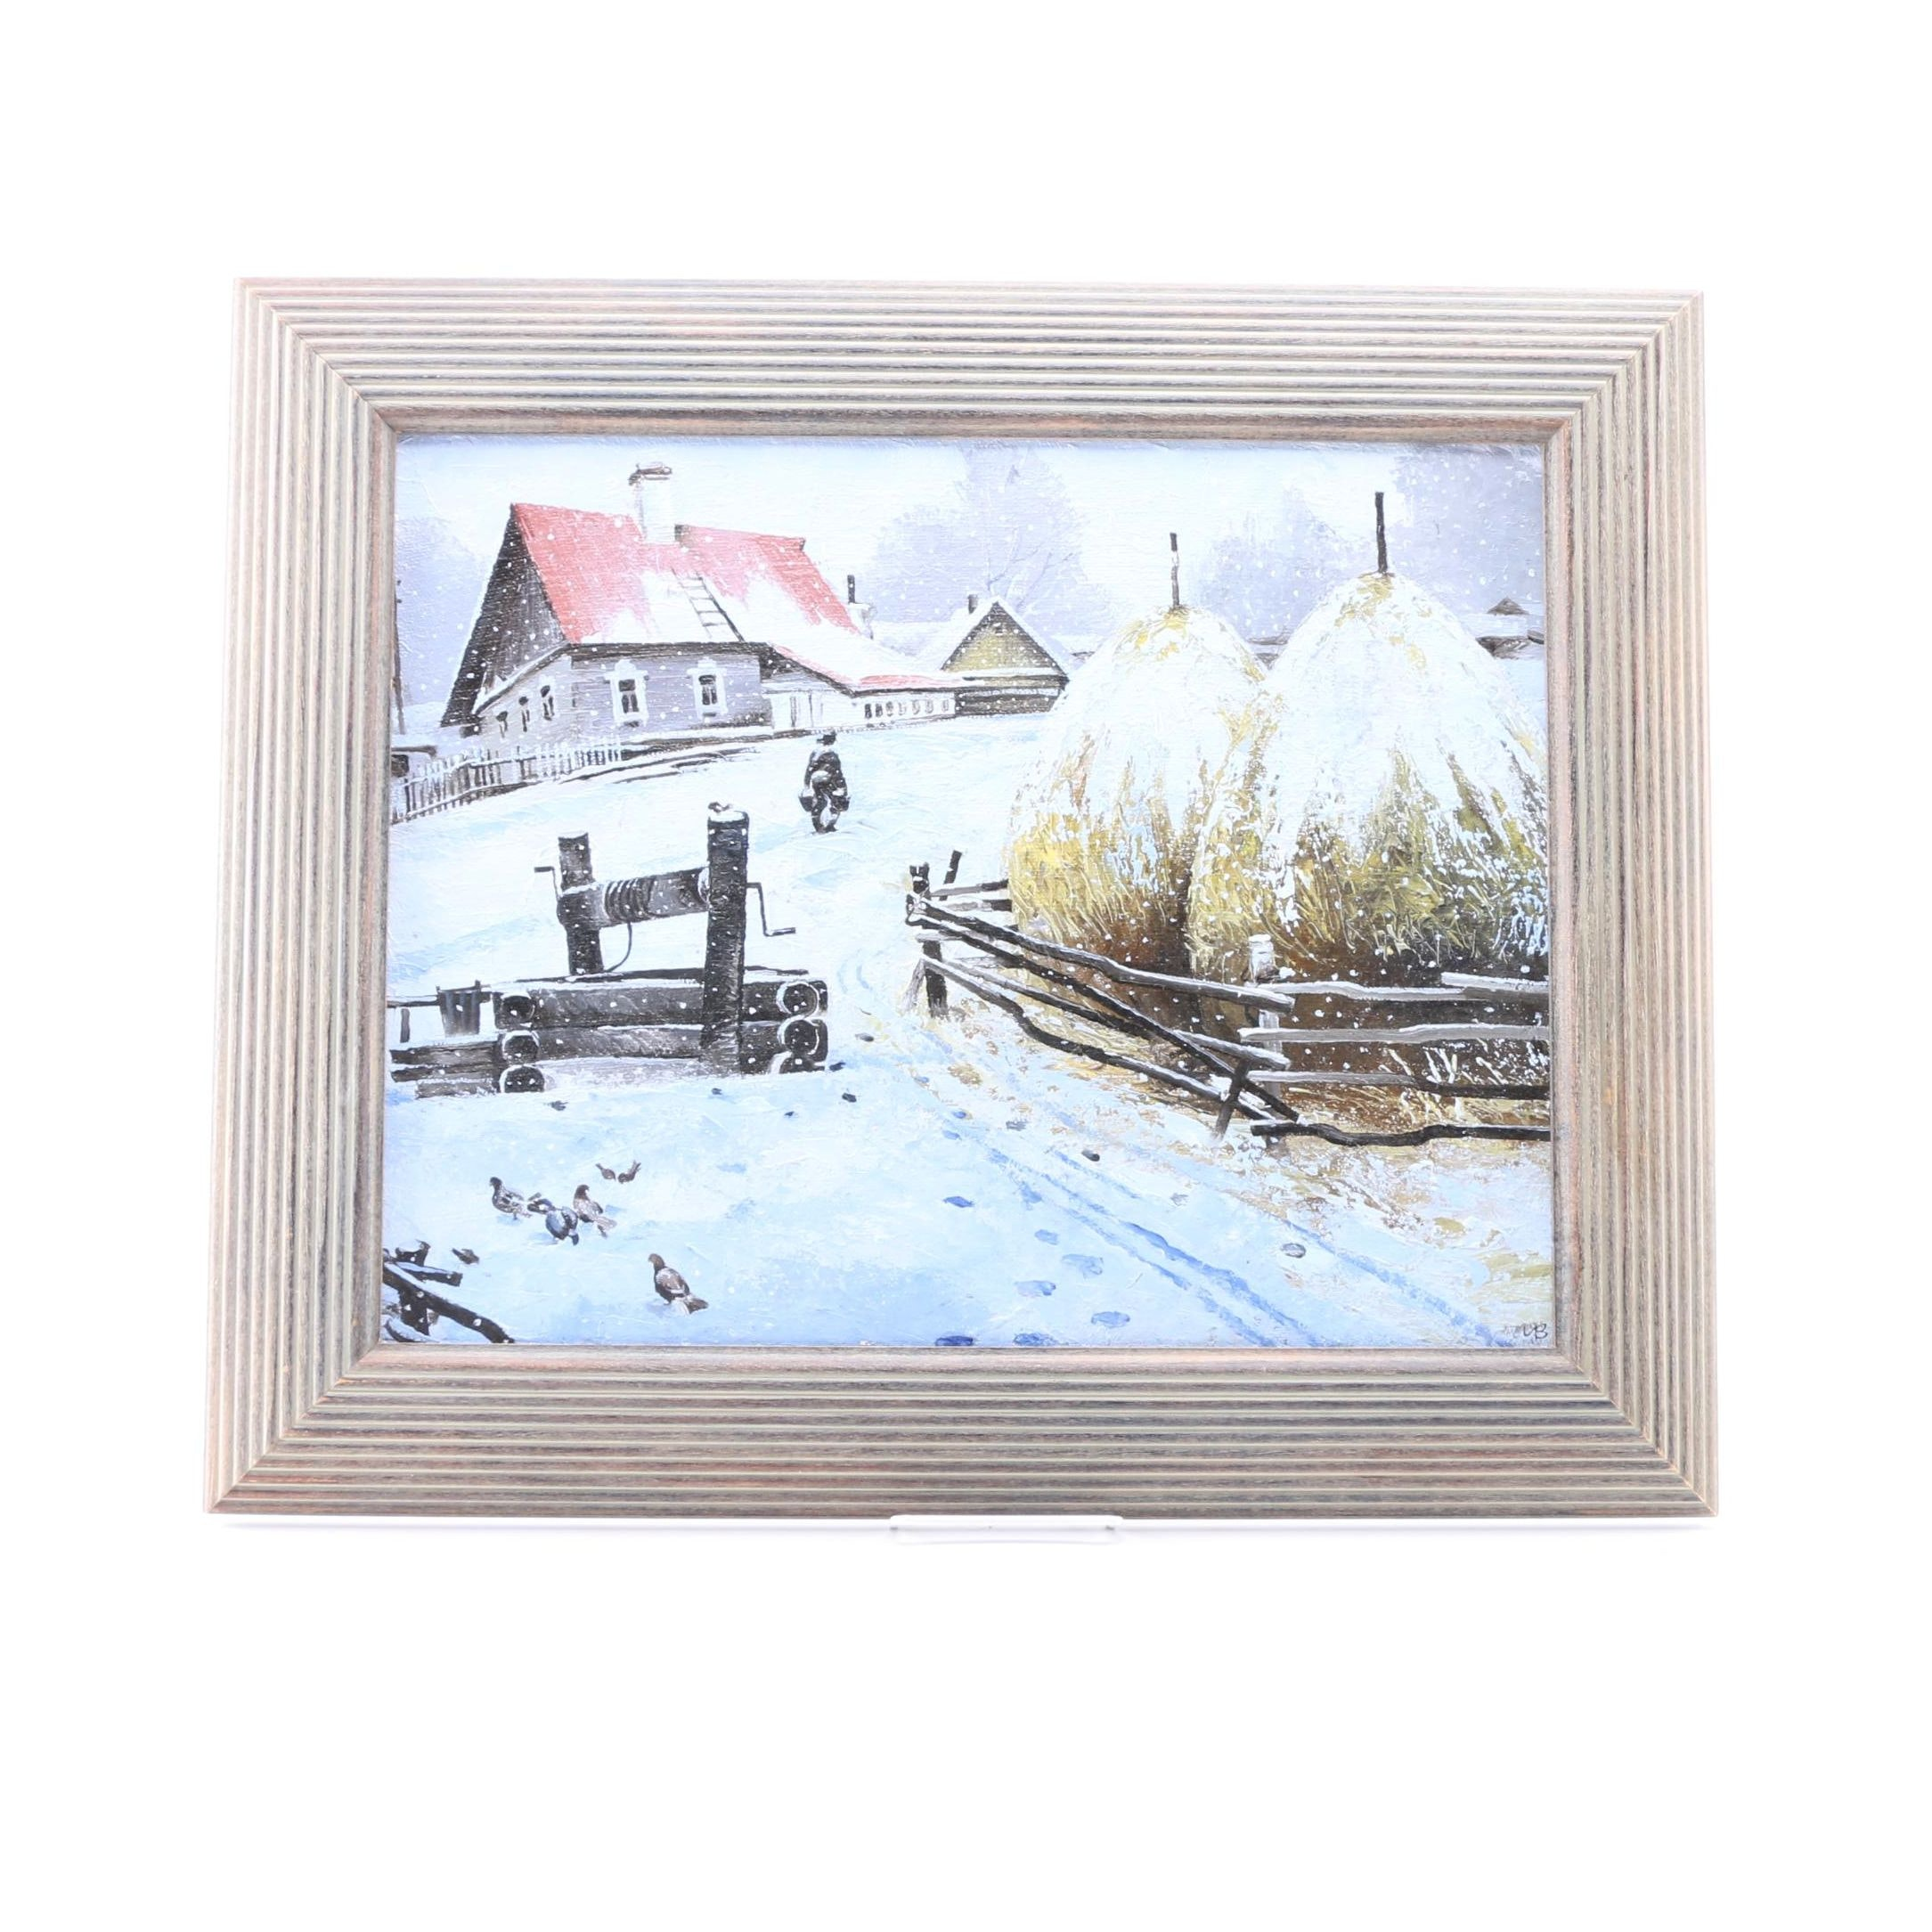 Oil Painting on Canvas of a Russian Winter Scene